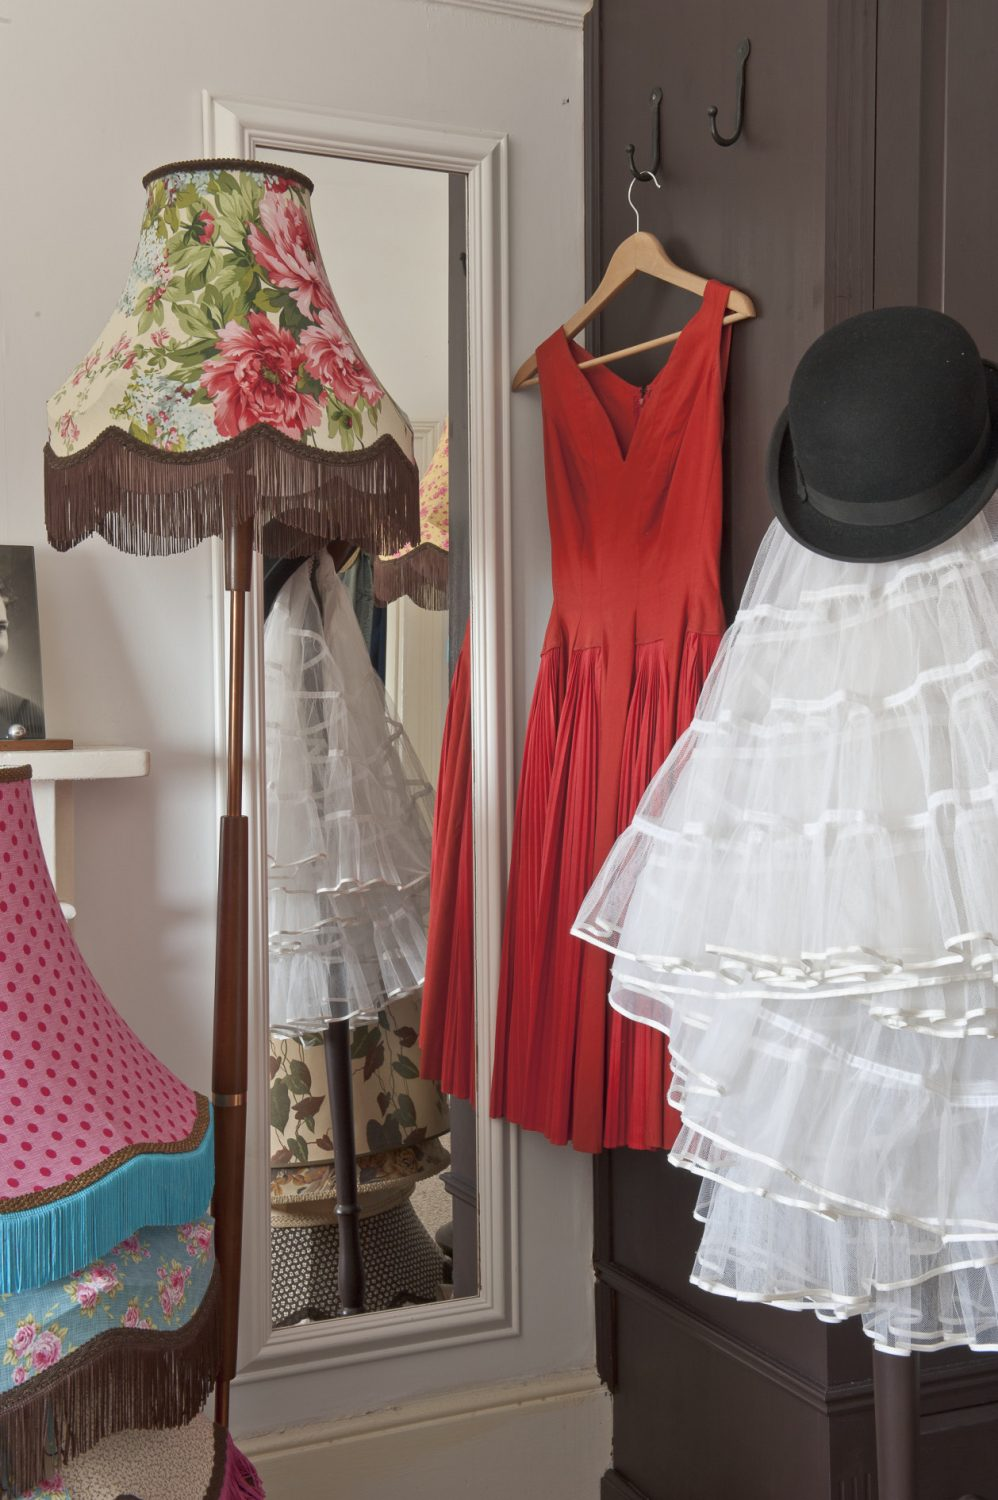 """Charlotte's workroom. """"I got some bespoke commissions as a result of the Wealden Times Midsummer Fair,"""" explains Charlotte. """"People sometimes bring me their own shades and fabrics so I can make them to suit their existing décor, which I'm also happy to do."""""""